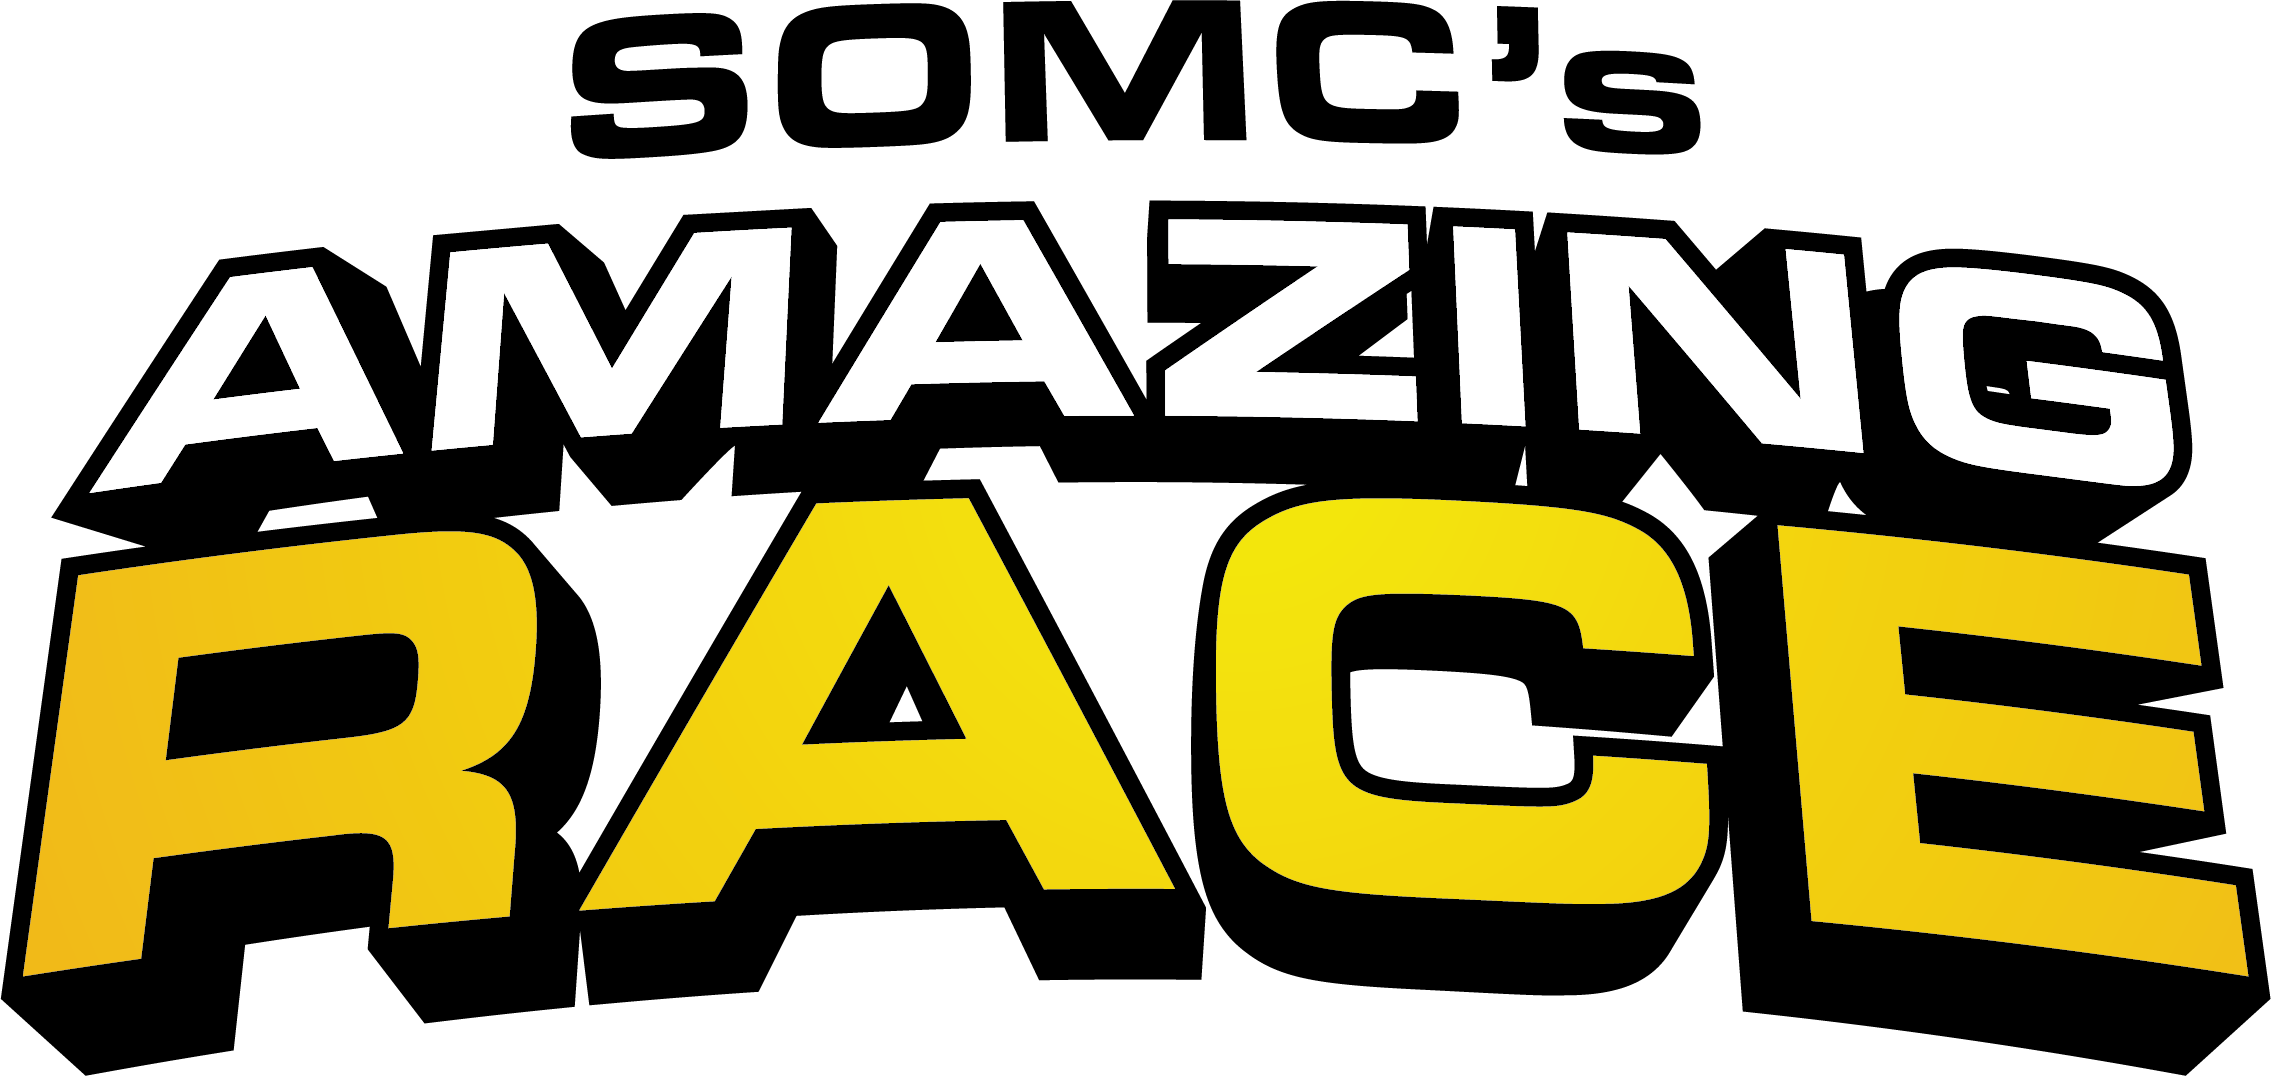 Download Hd Amazing Race Logo Transparent Transparent Png Image Nicepng Com